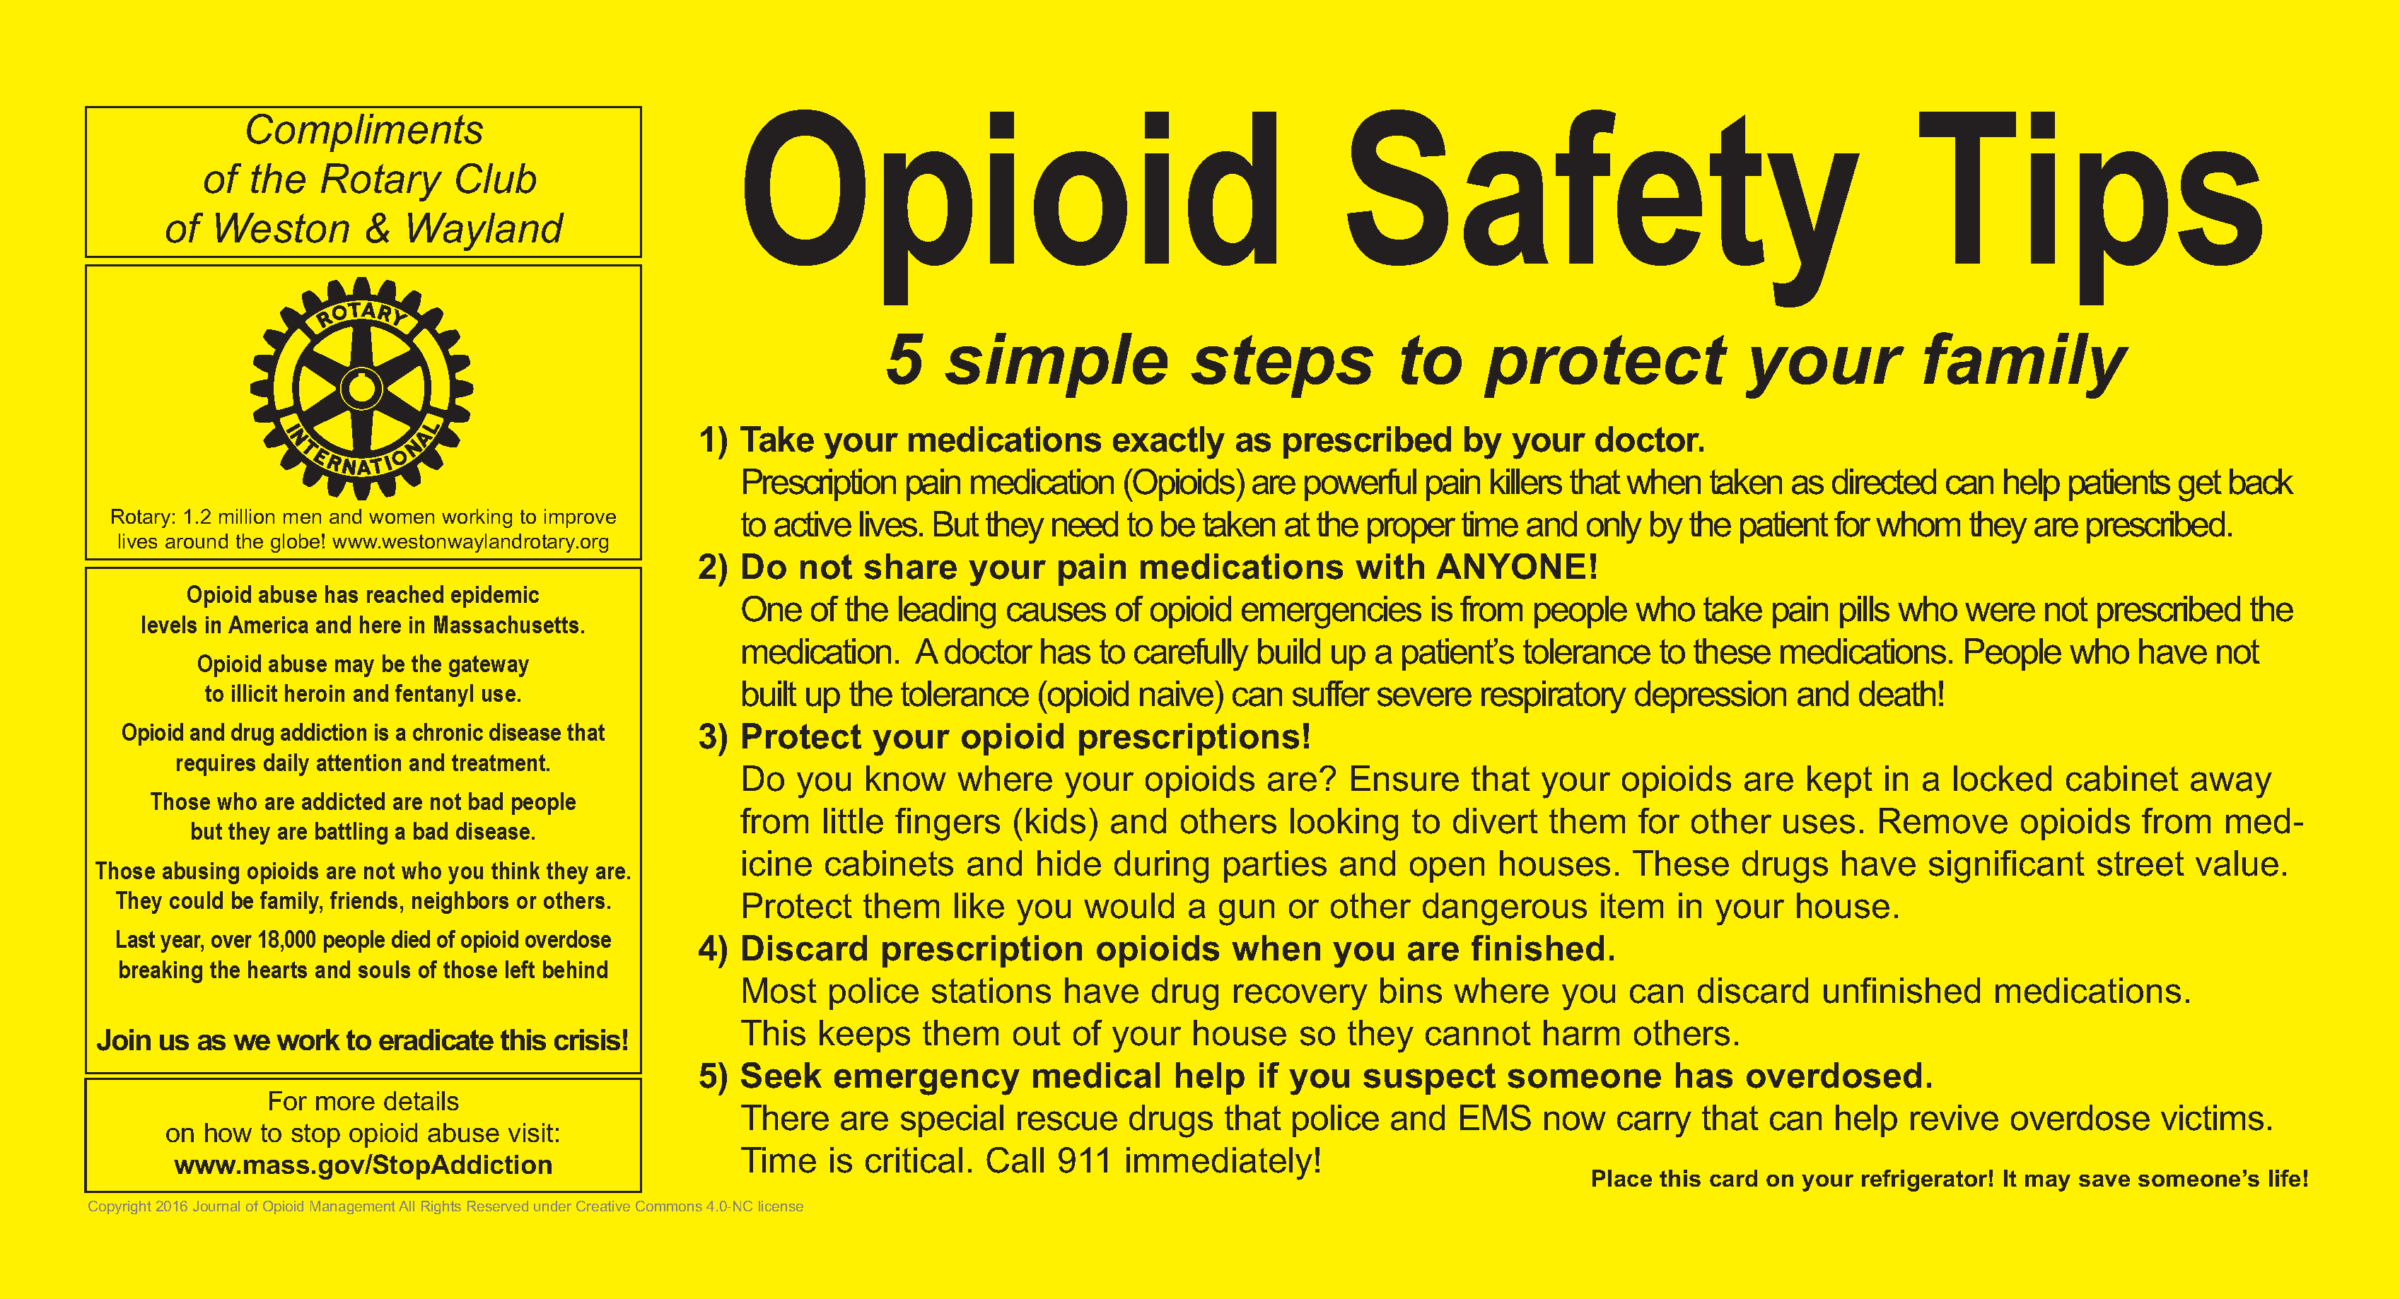 cropped-Rotary-Opioid-Safety-Card-Yellow-1.png